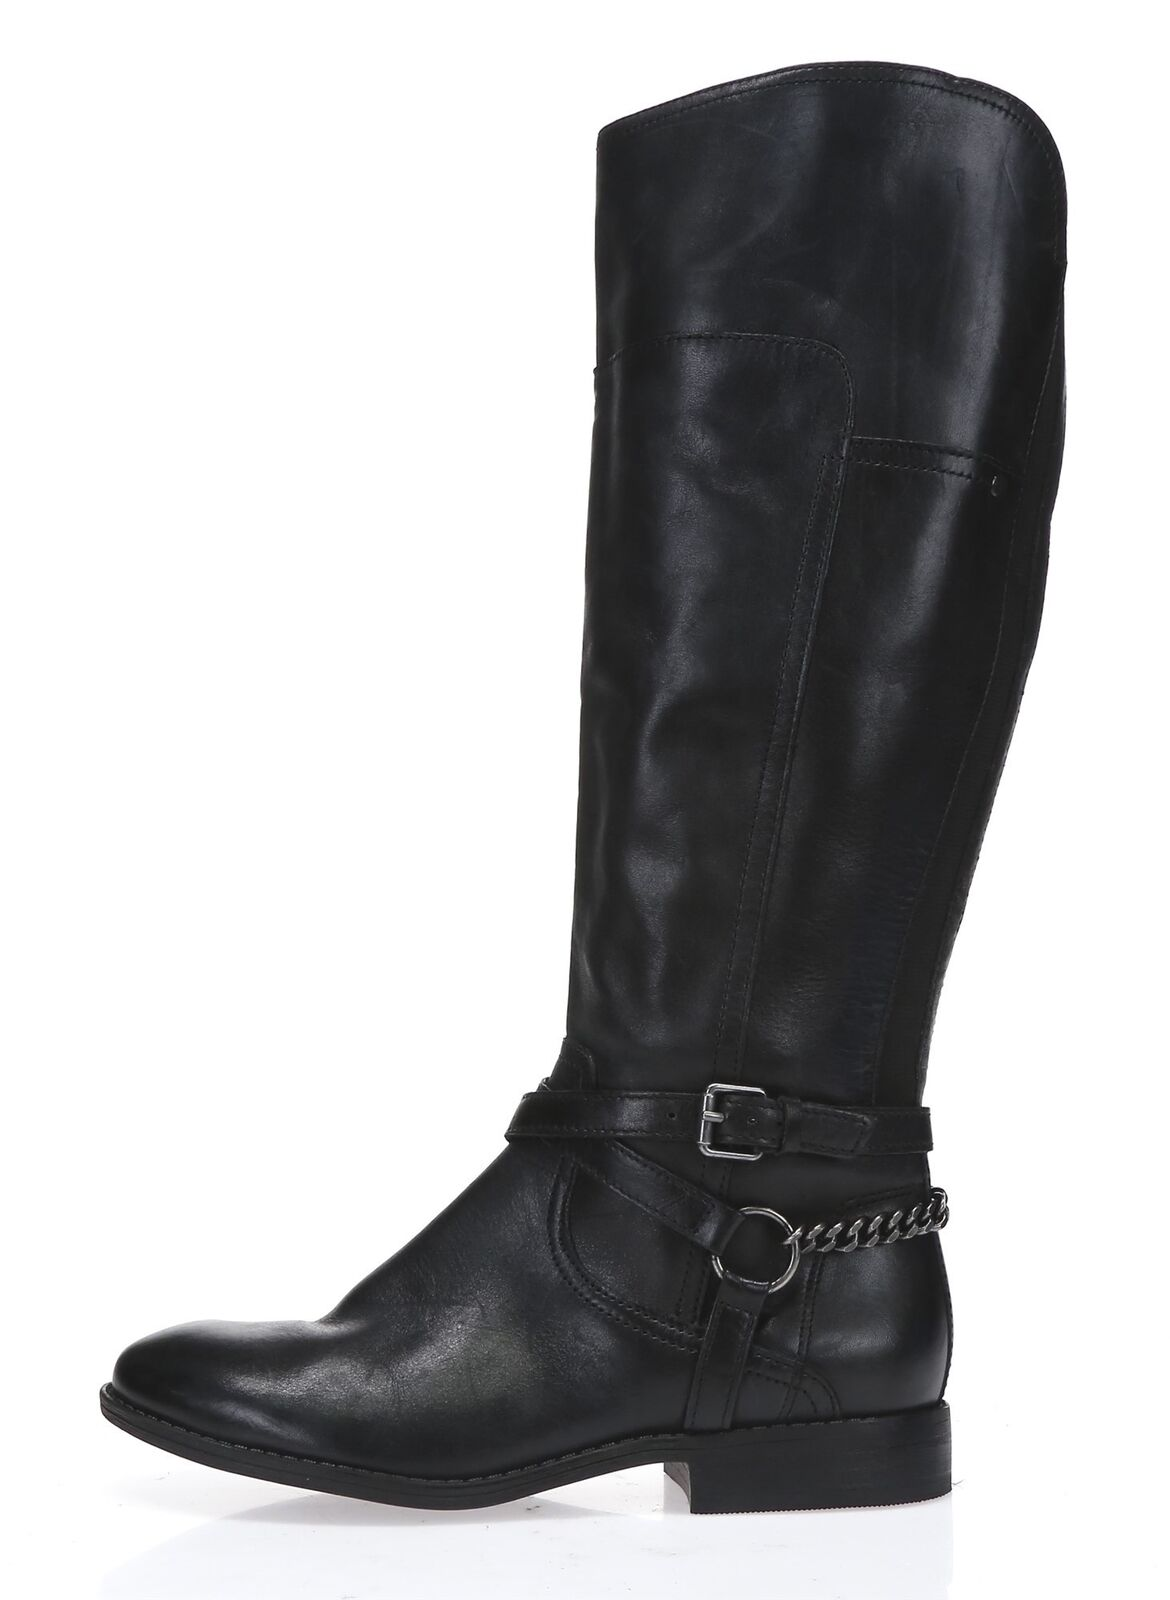 MARC FISHER Womens 'Alexis' Black Leather Tall Wide Calf Riding Boots Sz 6.5 NEW